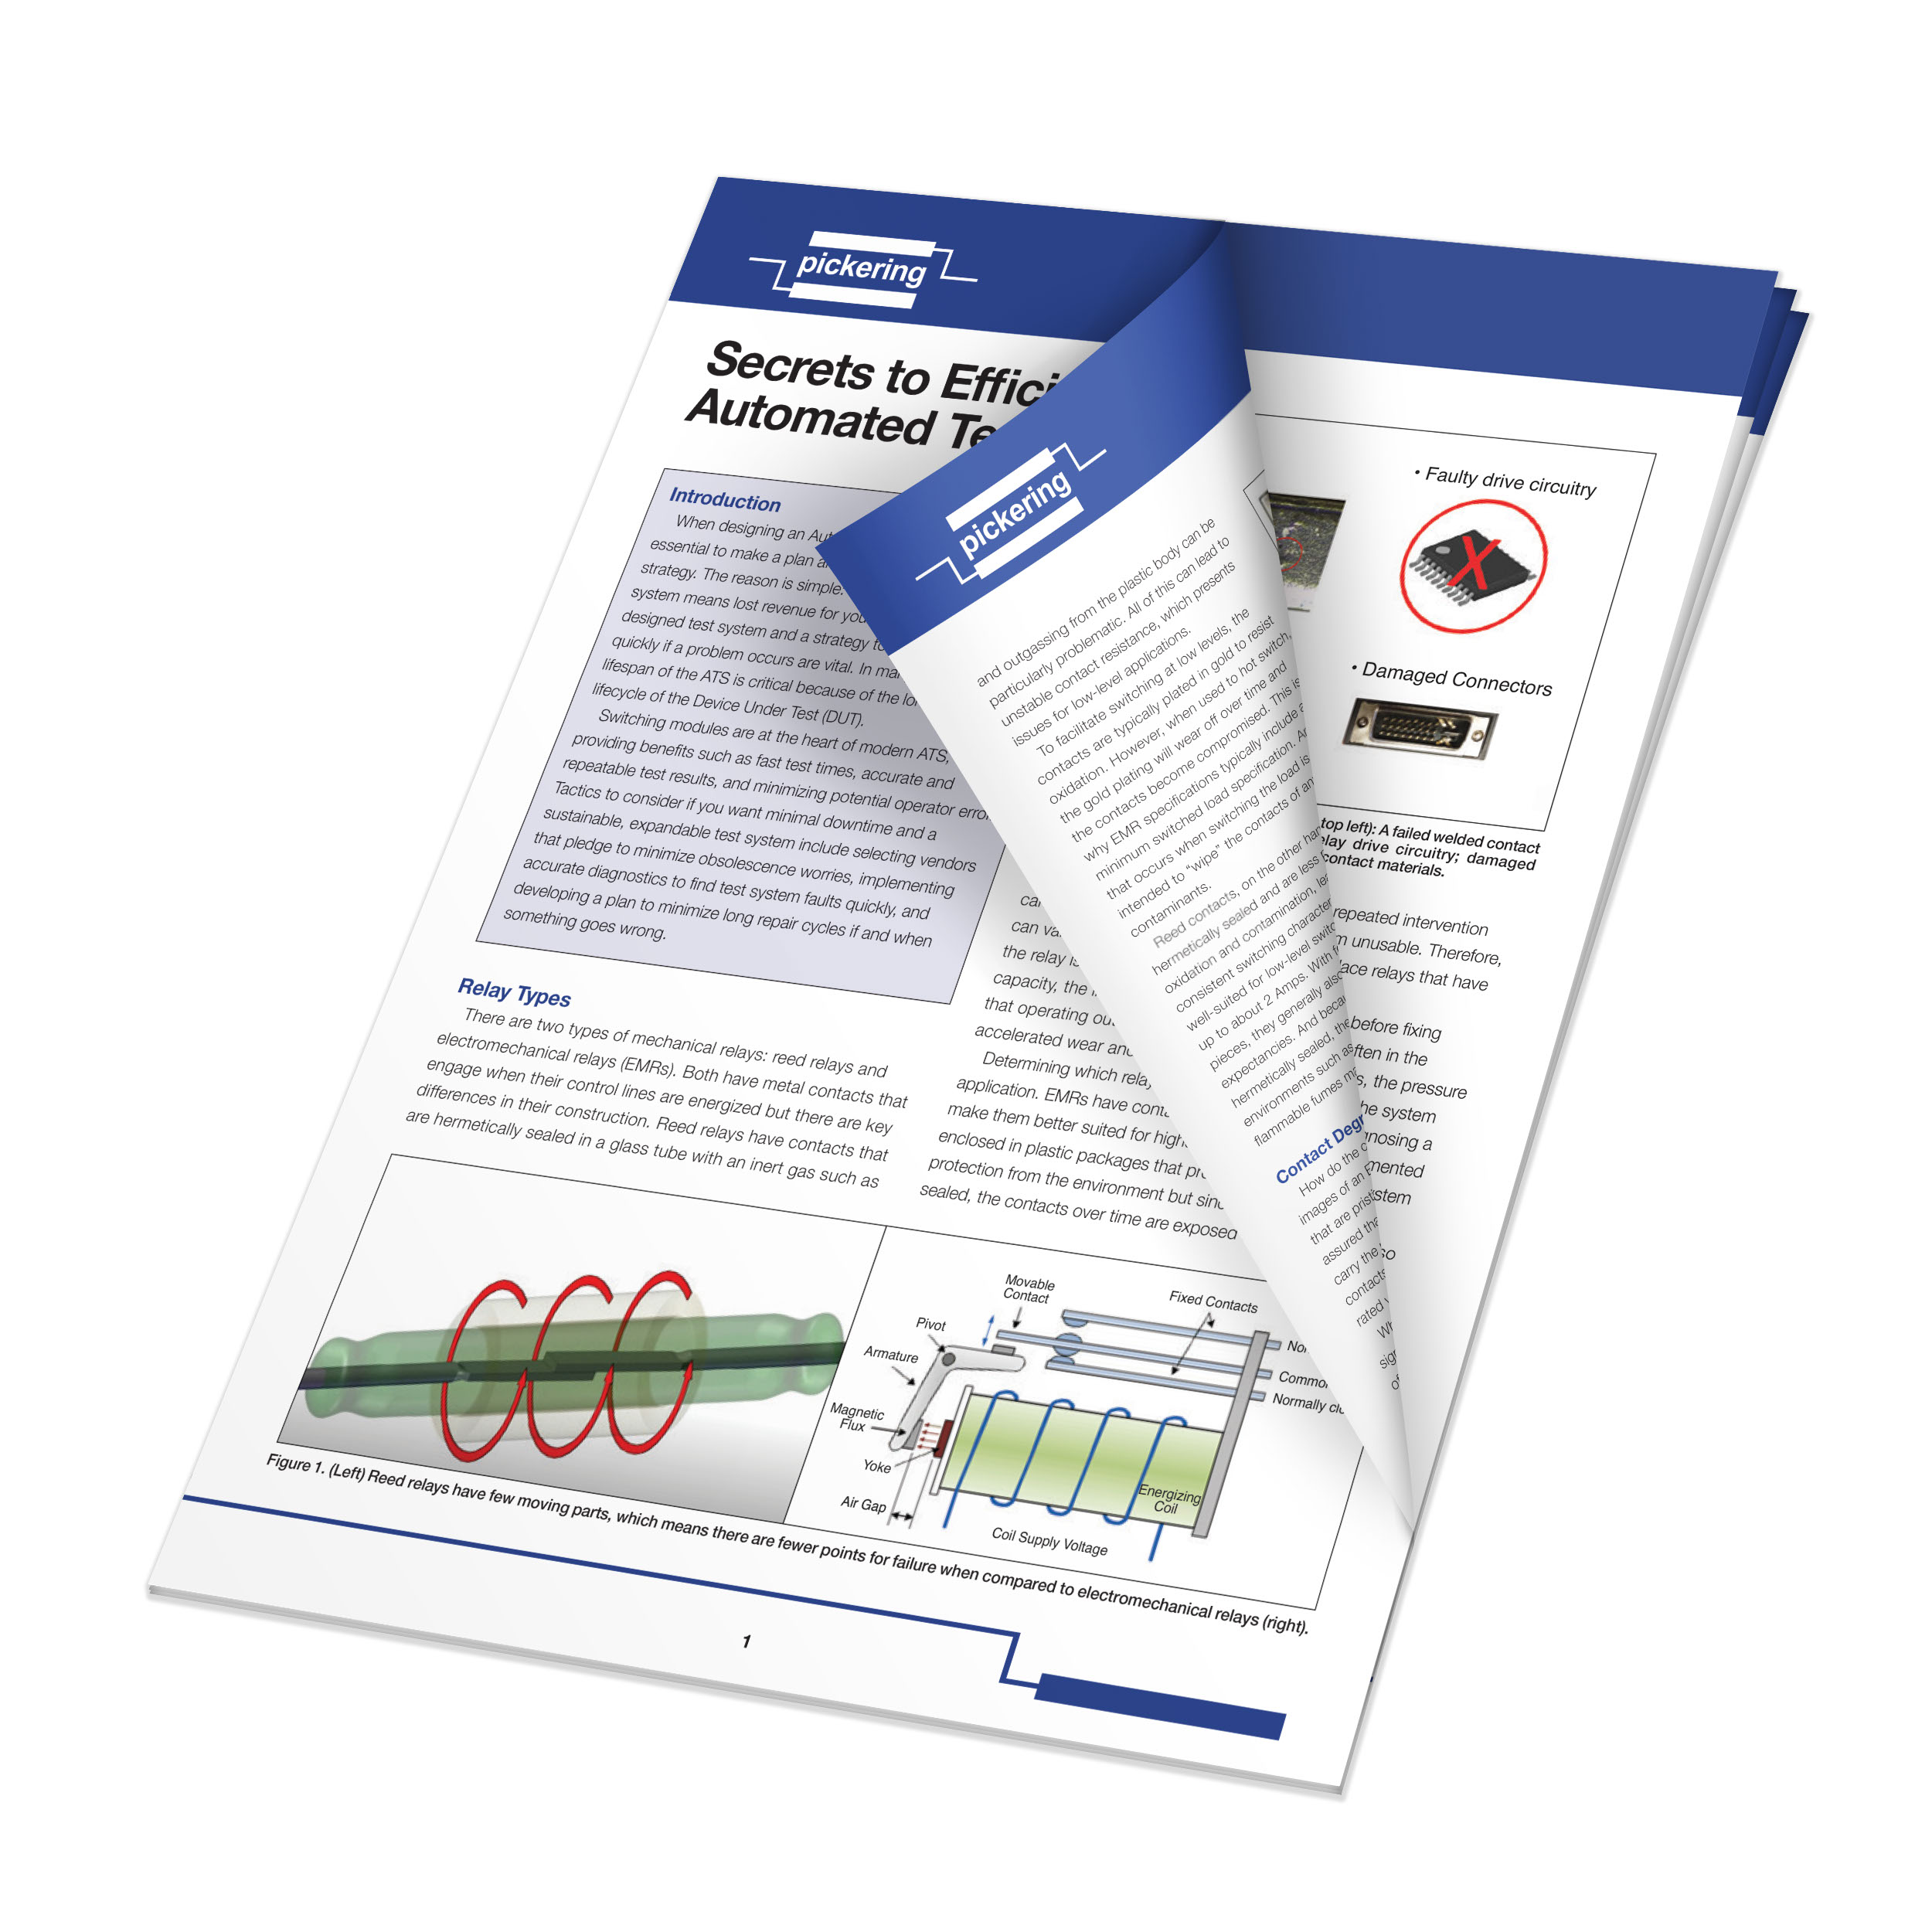 White Paper: Secrets to Efficiently Sustaining your Automated Test System